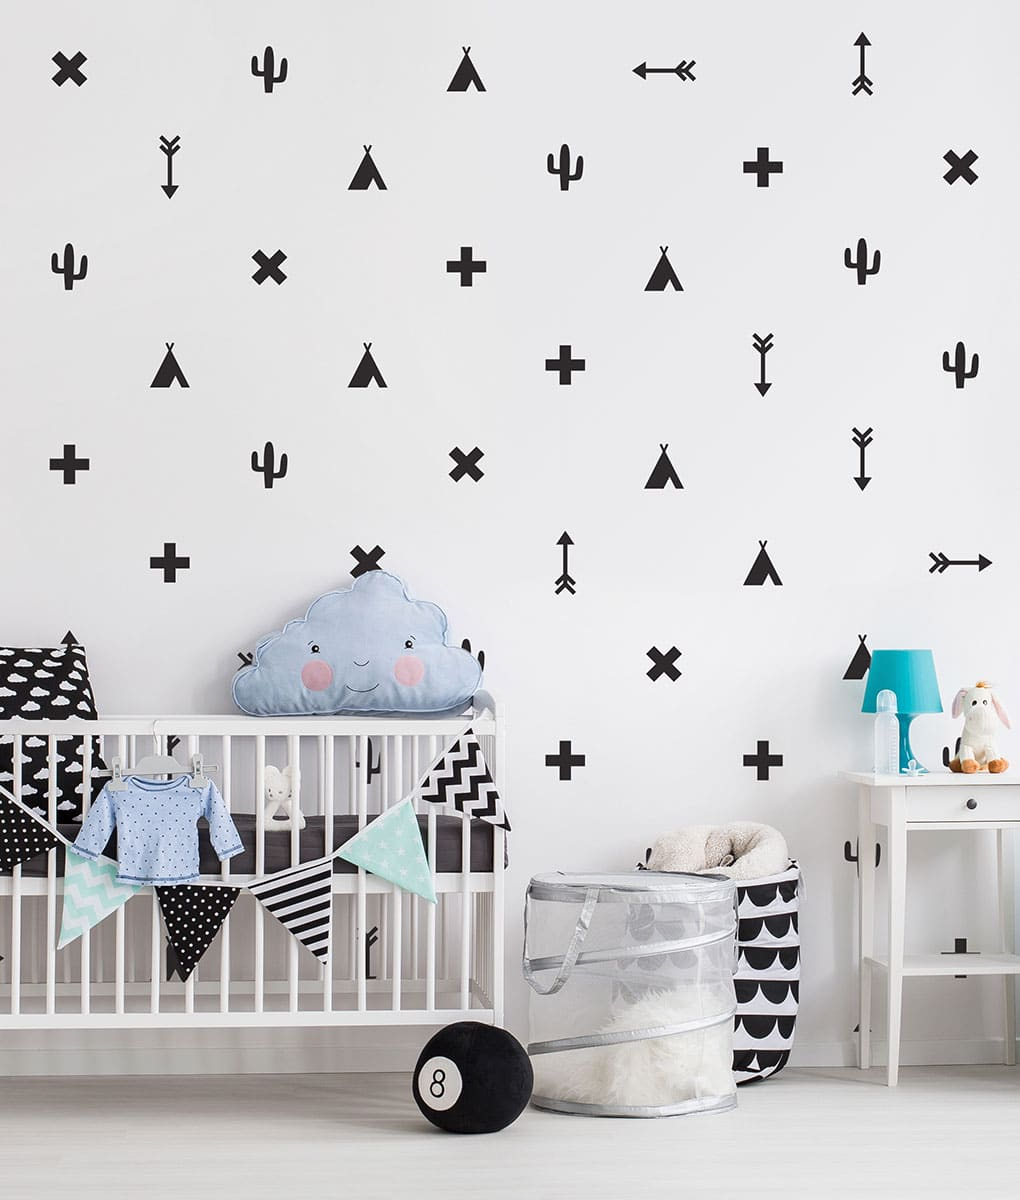 Removable Nursery Decor (Gallery 18 of 20)